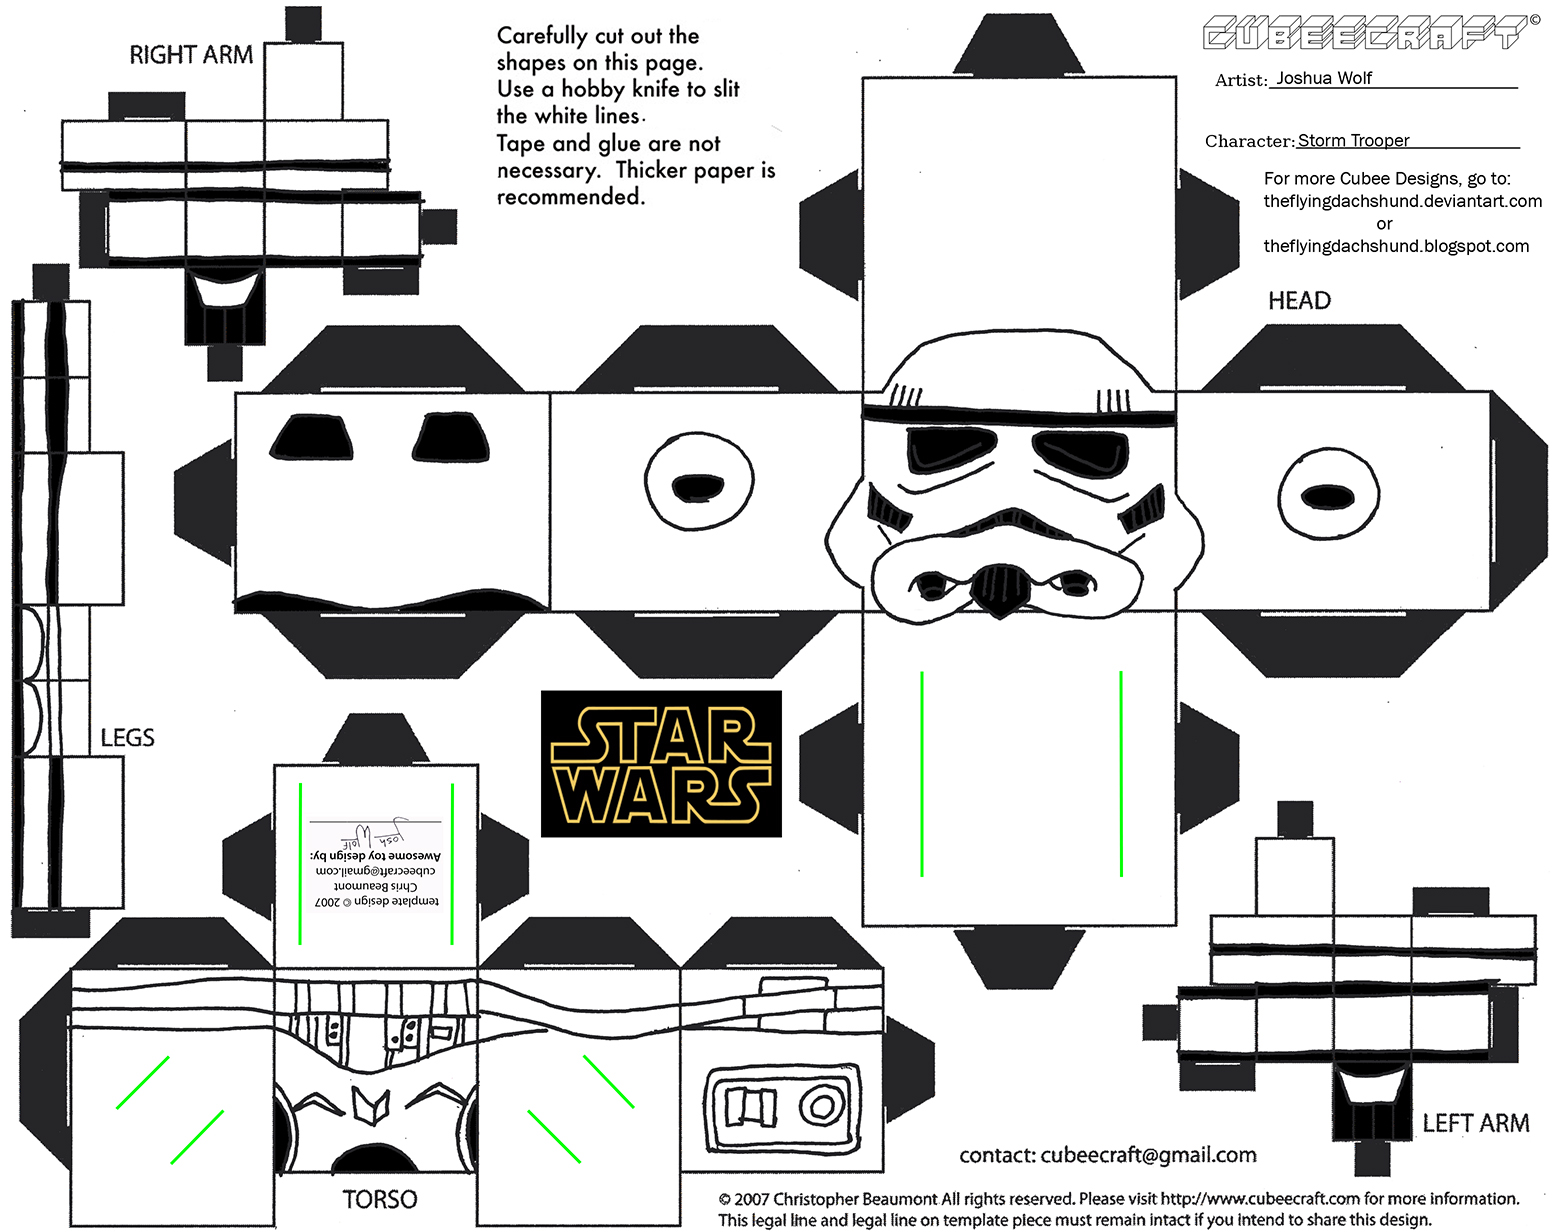 Sw8 Storm Trooper Cubee By Theflyingdachshund On Deviantart